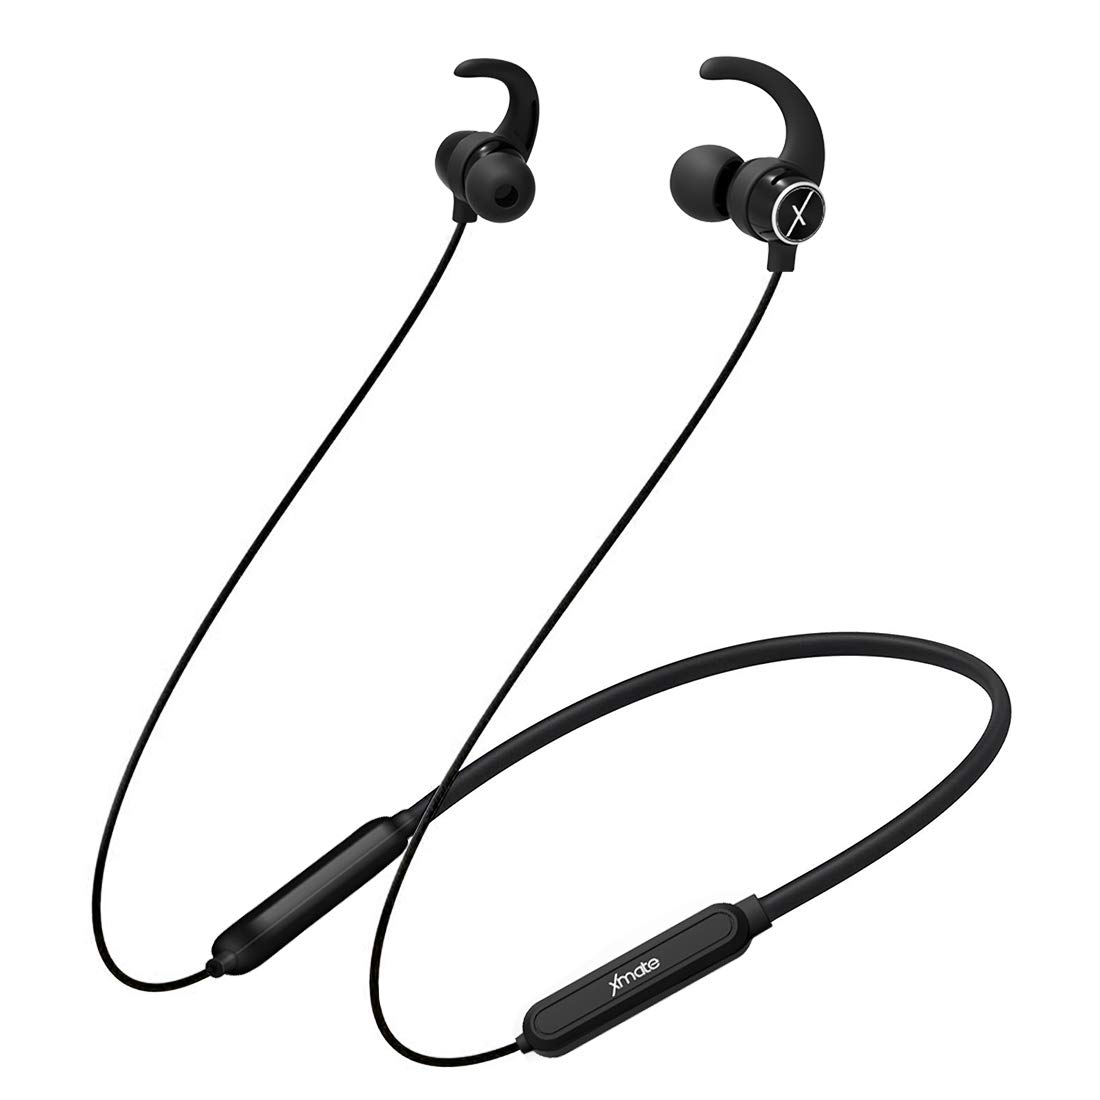 Xmate Mana Bluetooth Headphones With Qualcomm Chipset, High